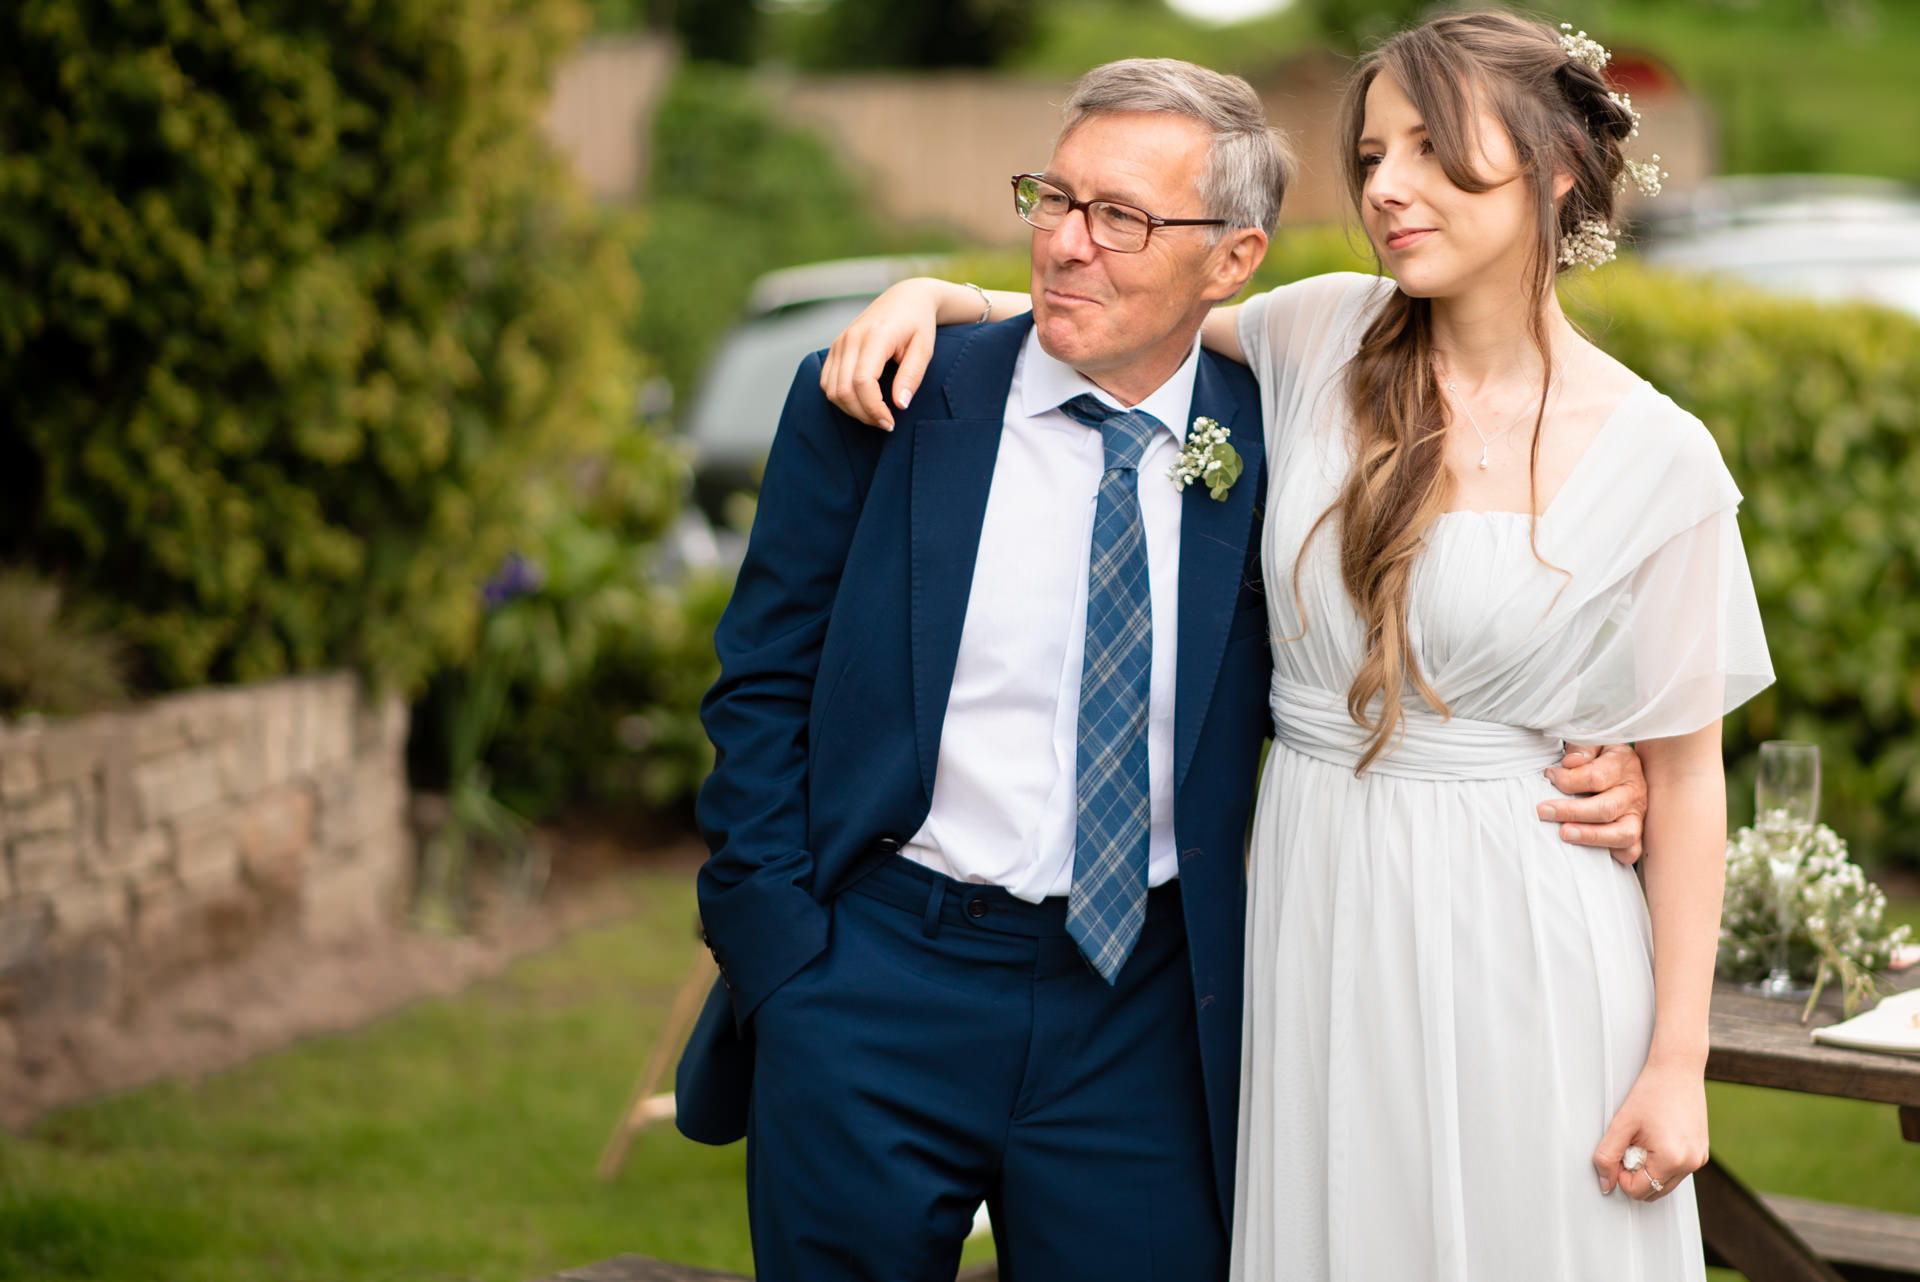 Reportage and documentary wedding photographer in Cheshire